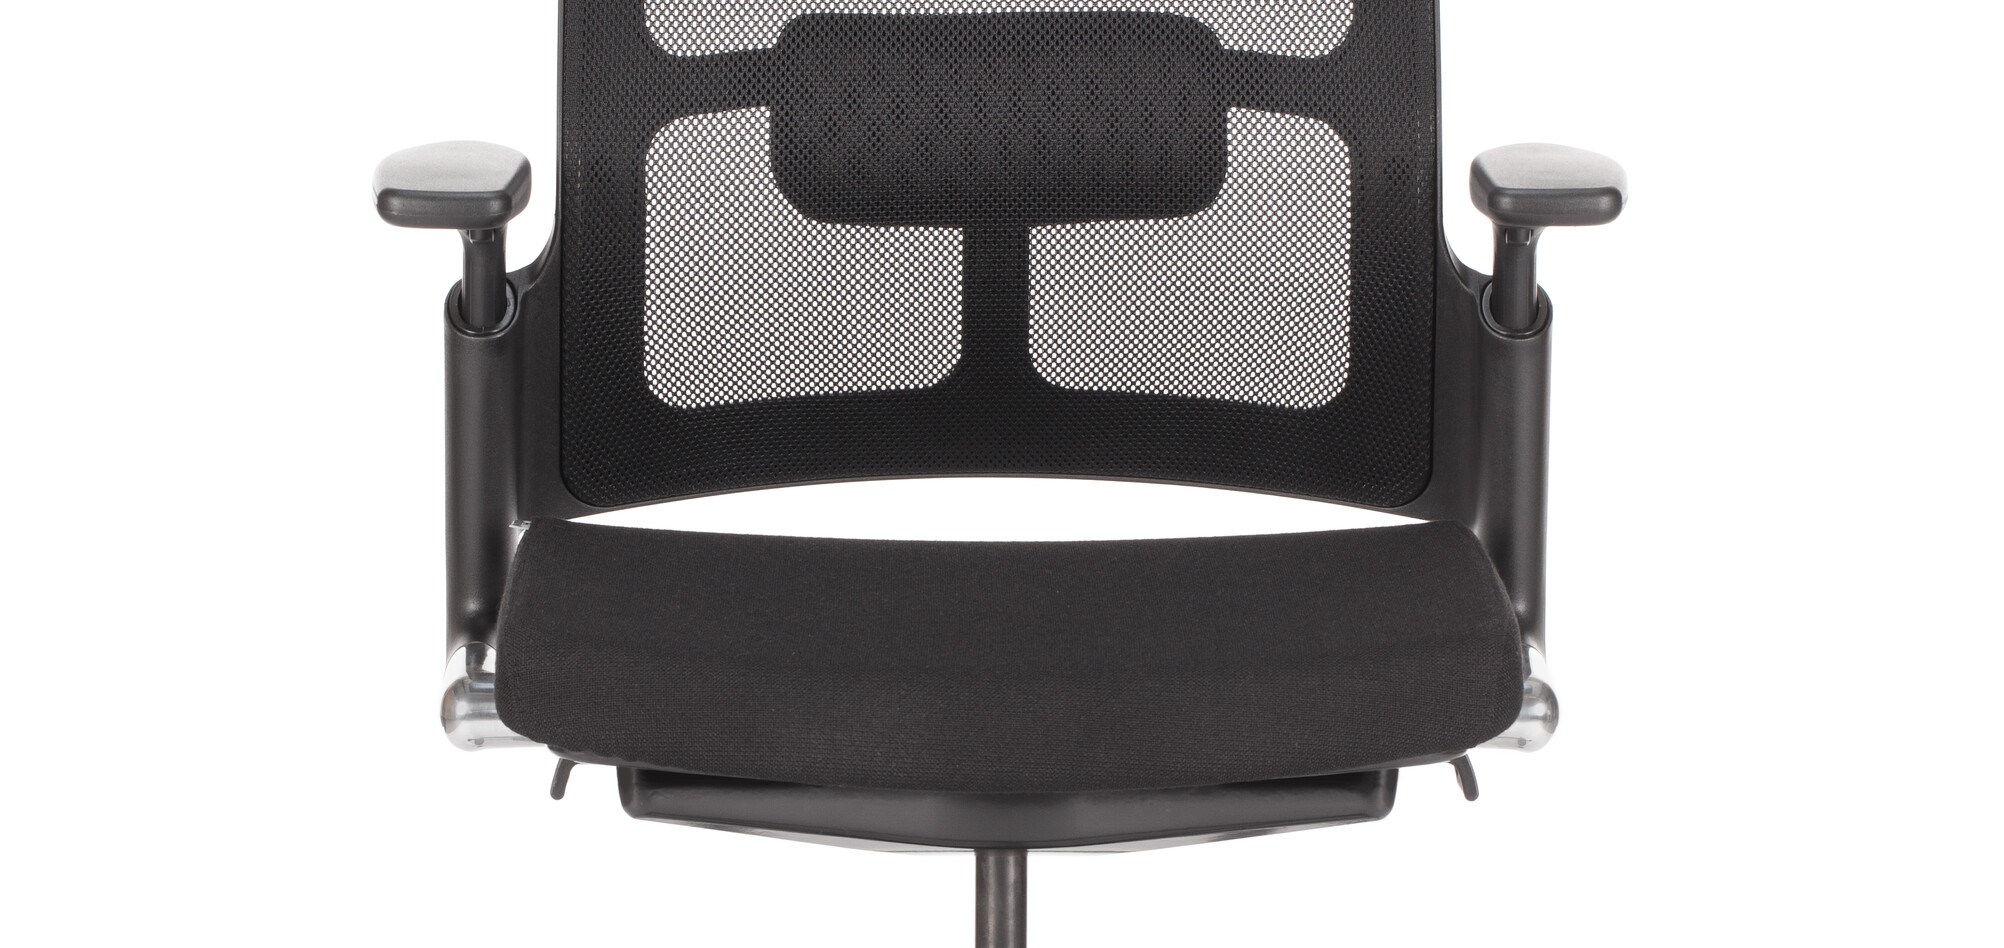 Royal Ahrend 2020 Verta work chair upholstered in black at lowest point front view